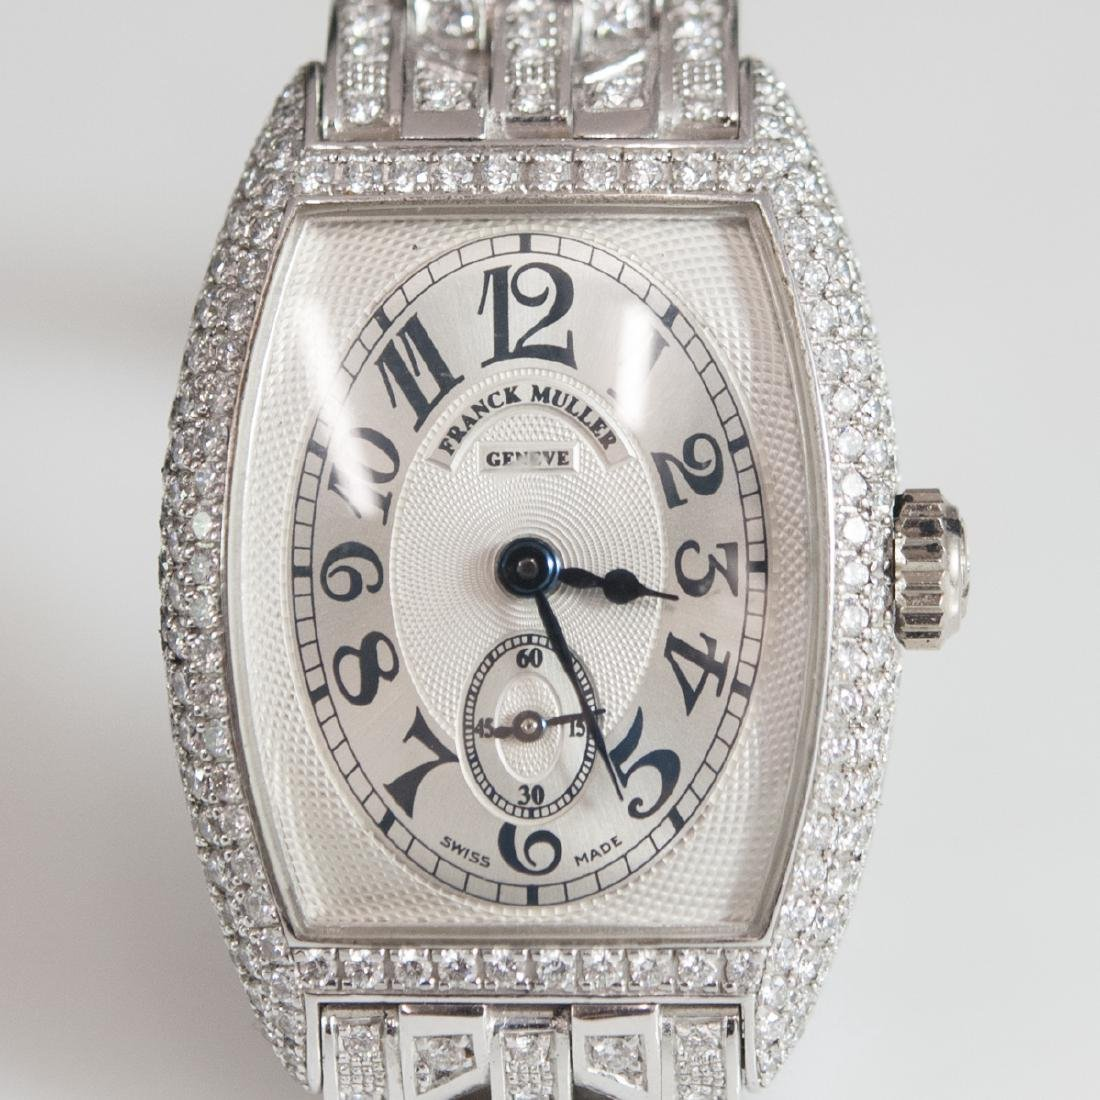 Franck Muller Chronometro 18kt Gold Diamond Watch - 3